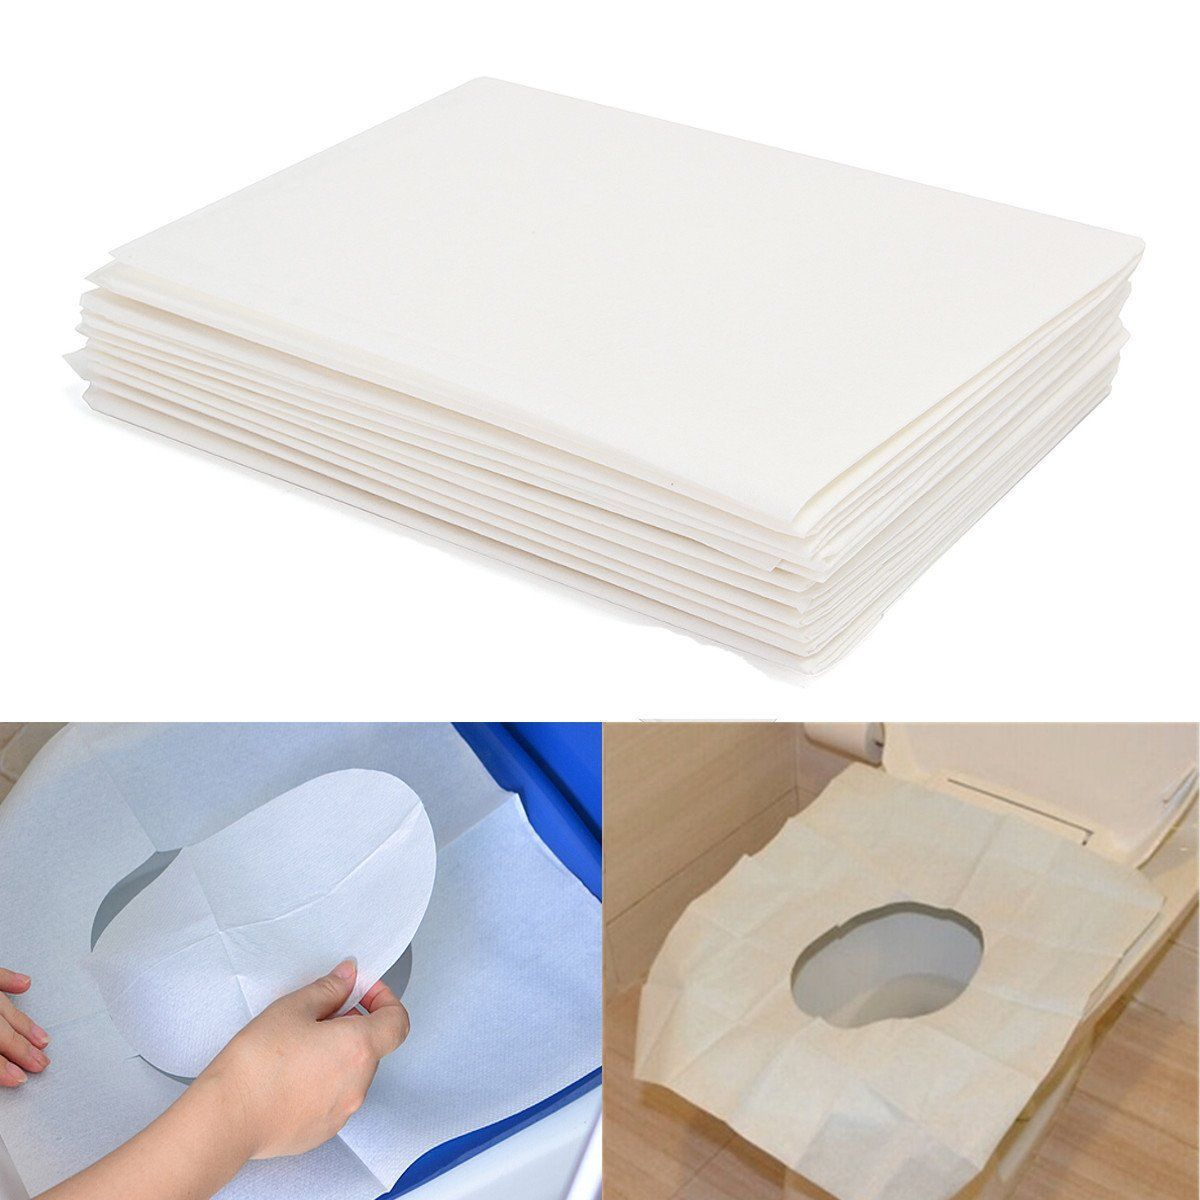 10pcs Toilet Seat Covers Paper Travel Biodegradable Disposable